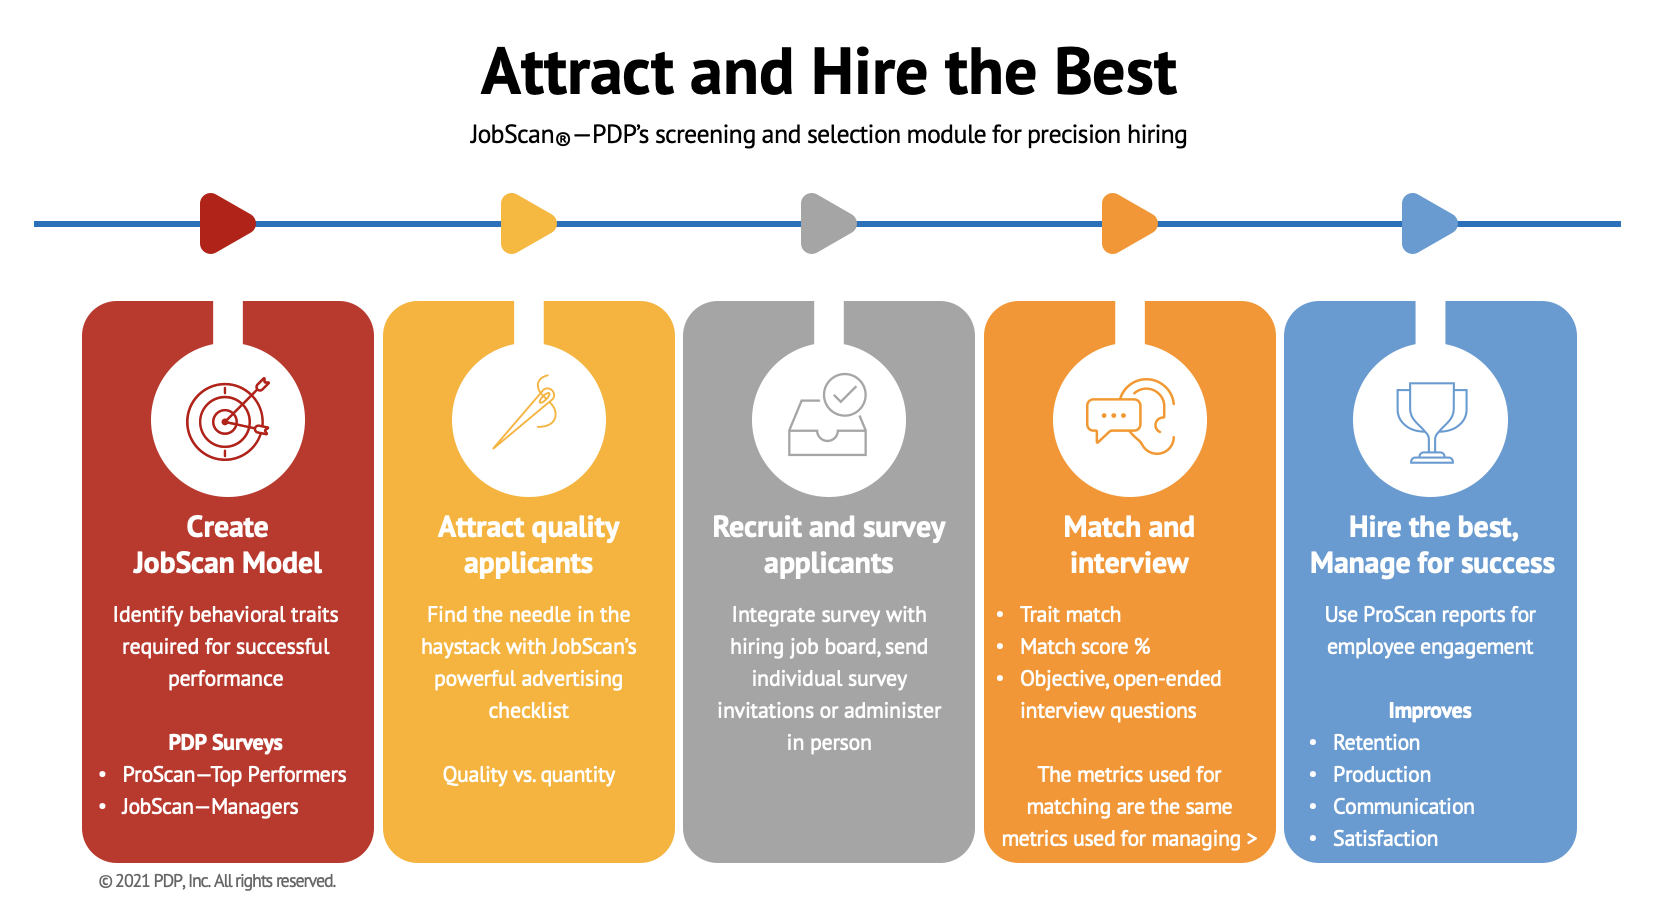 JobScan process - Attract and Hire the Best - Precision Hiring